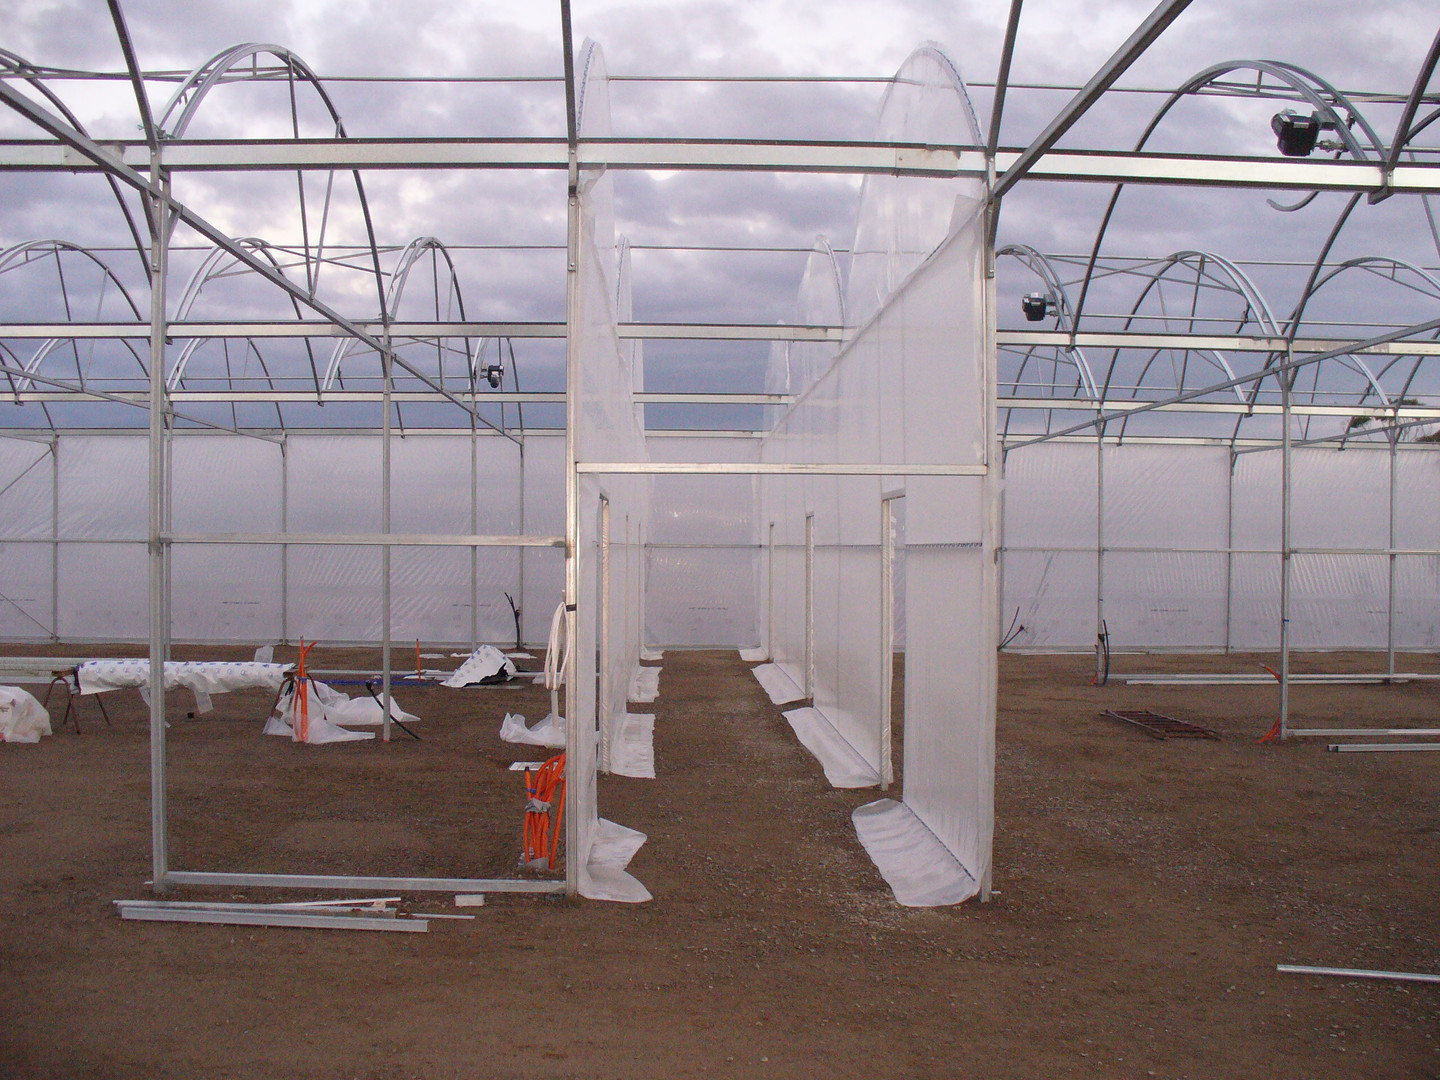 Middle passage way through nursery taking you to each individually temperature controlled growing room.